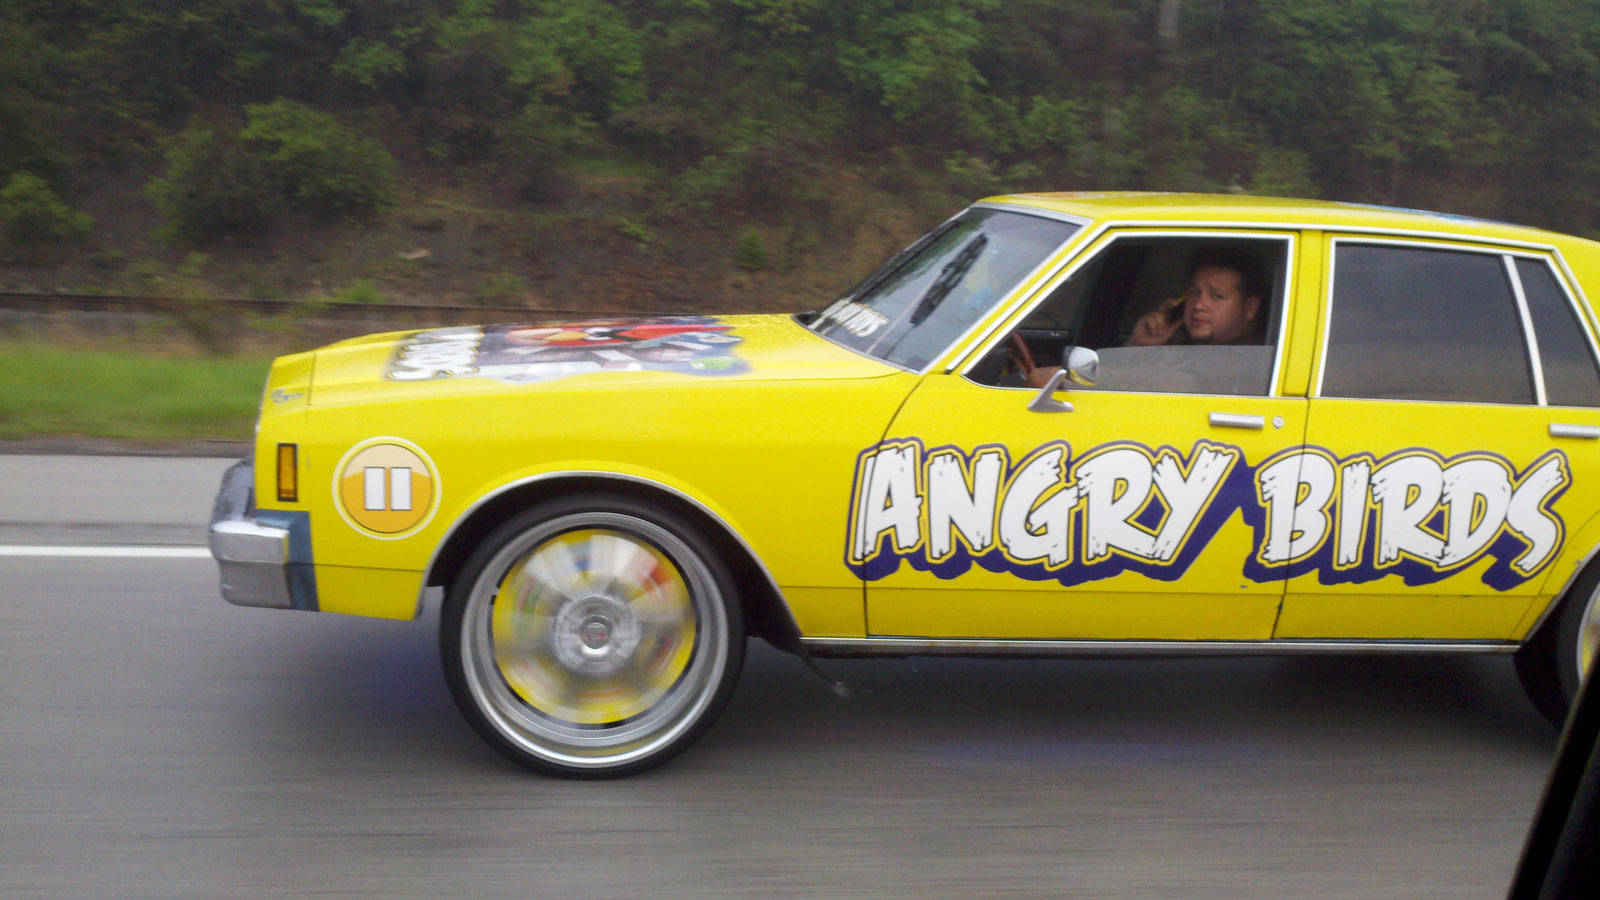 http://cache.jalopnik.com/assets/images/12/2011/05/angry_birds_donk.jpg